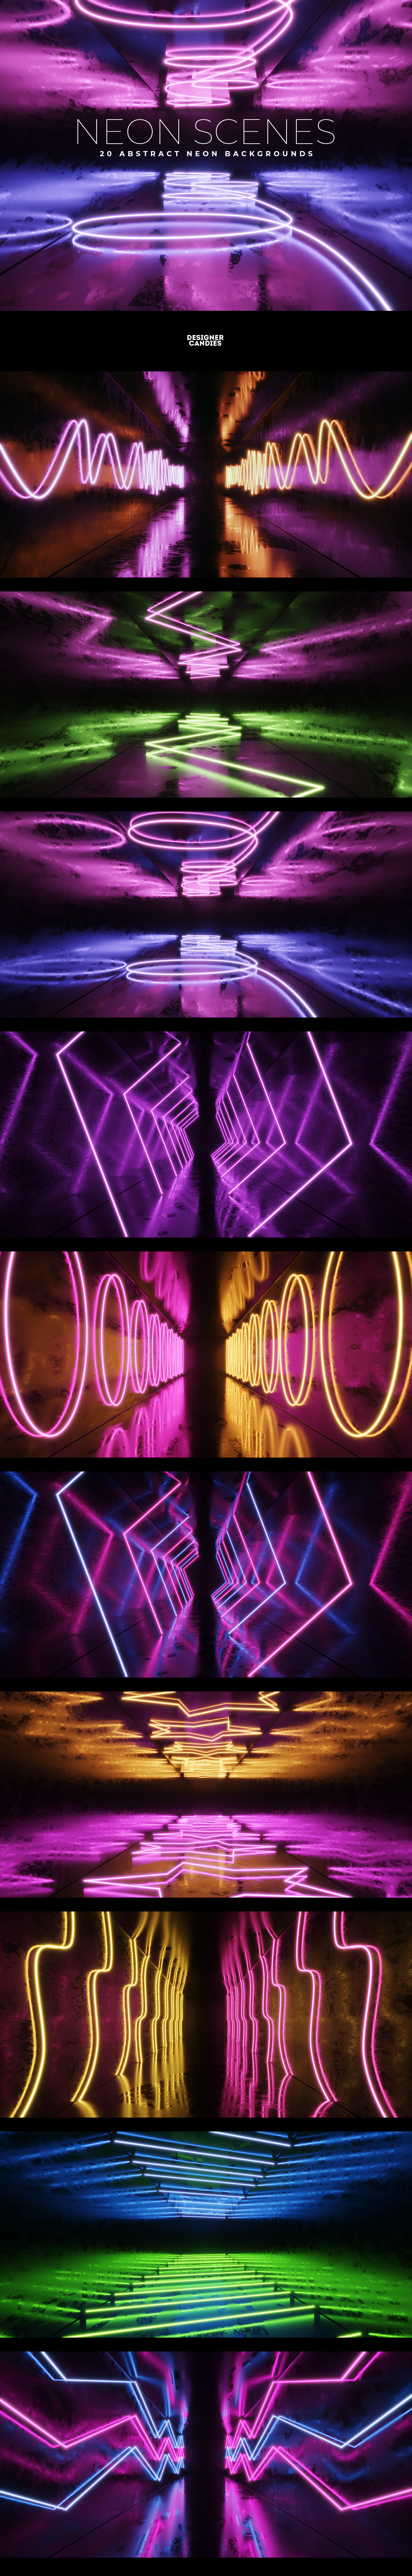 Neon Scenes Abstract Neon Background Images